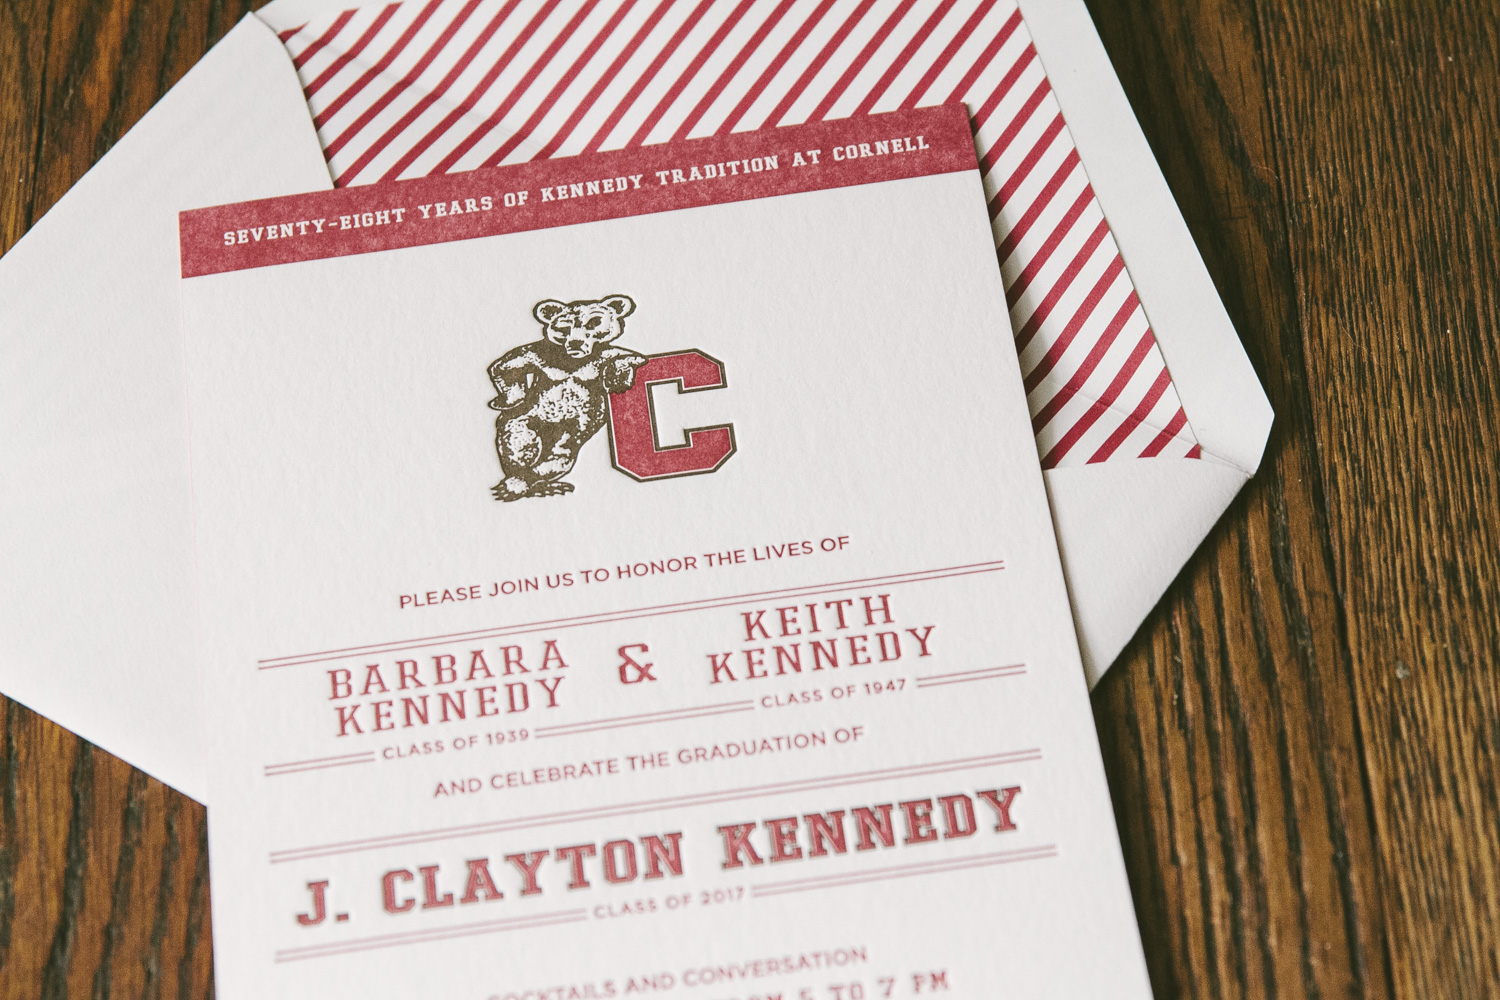 Scholarly letterpress graduation invitations from Smock